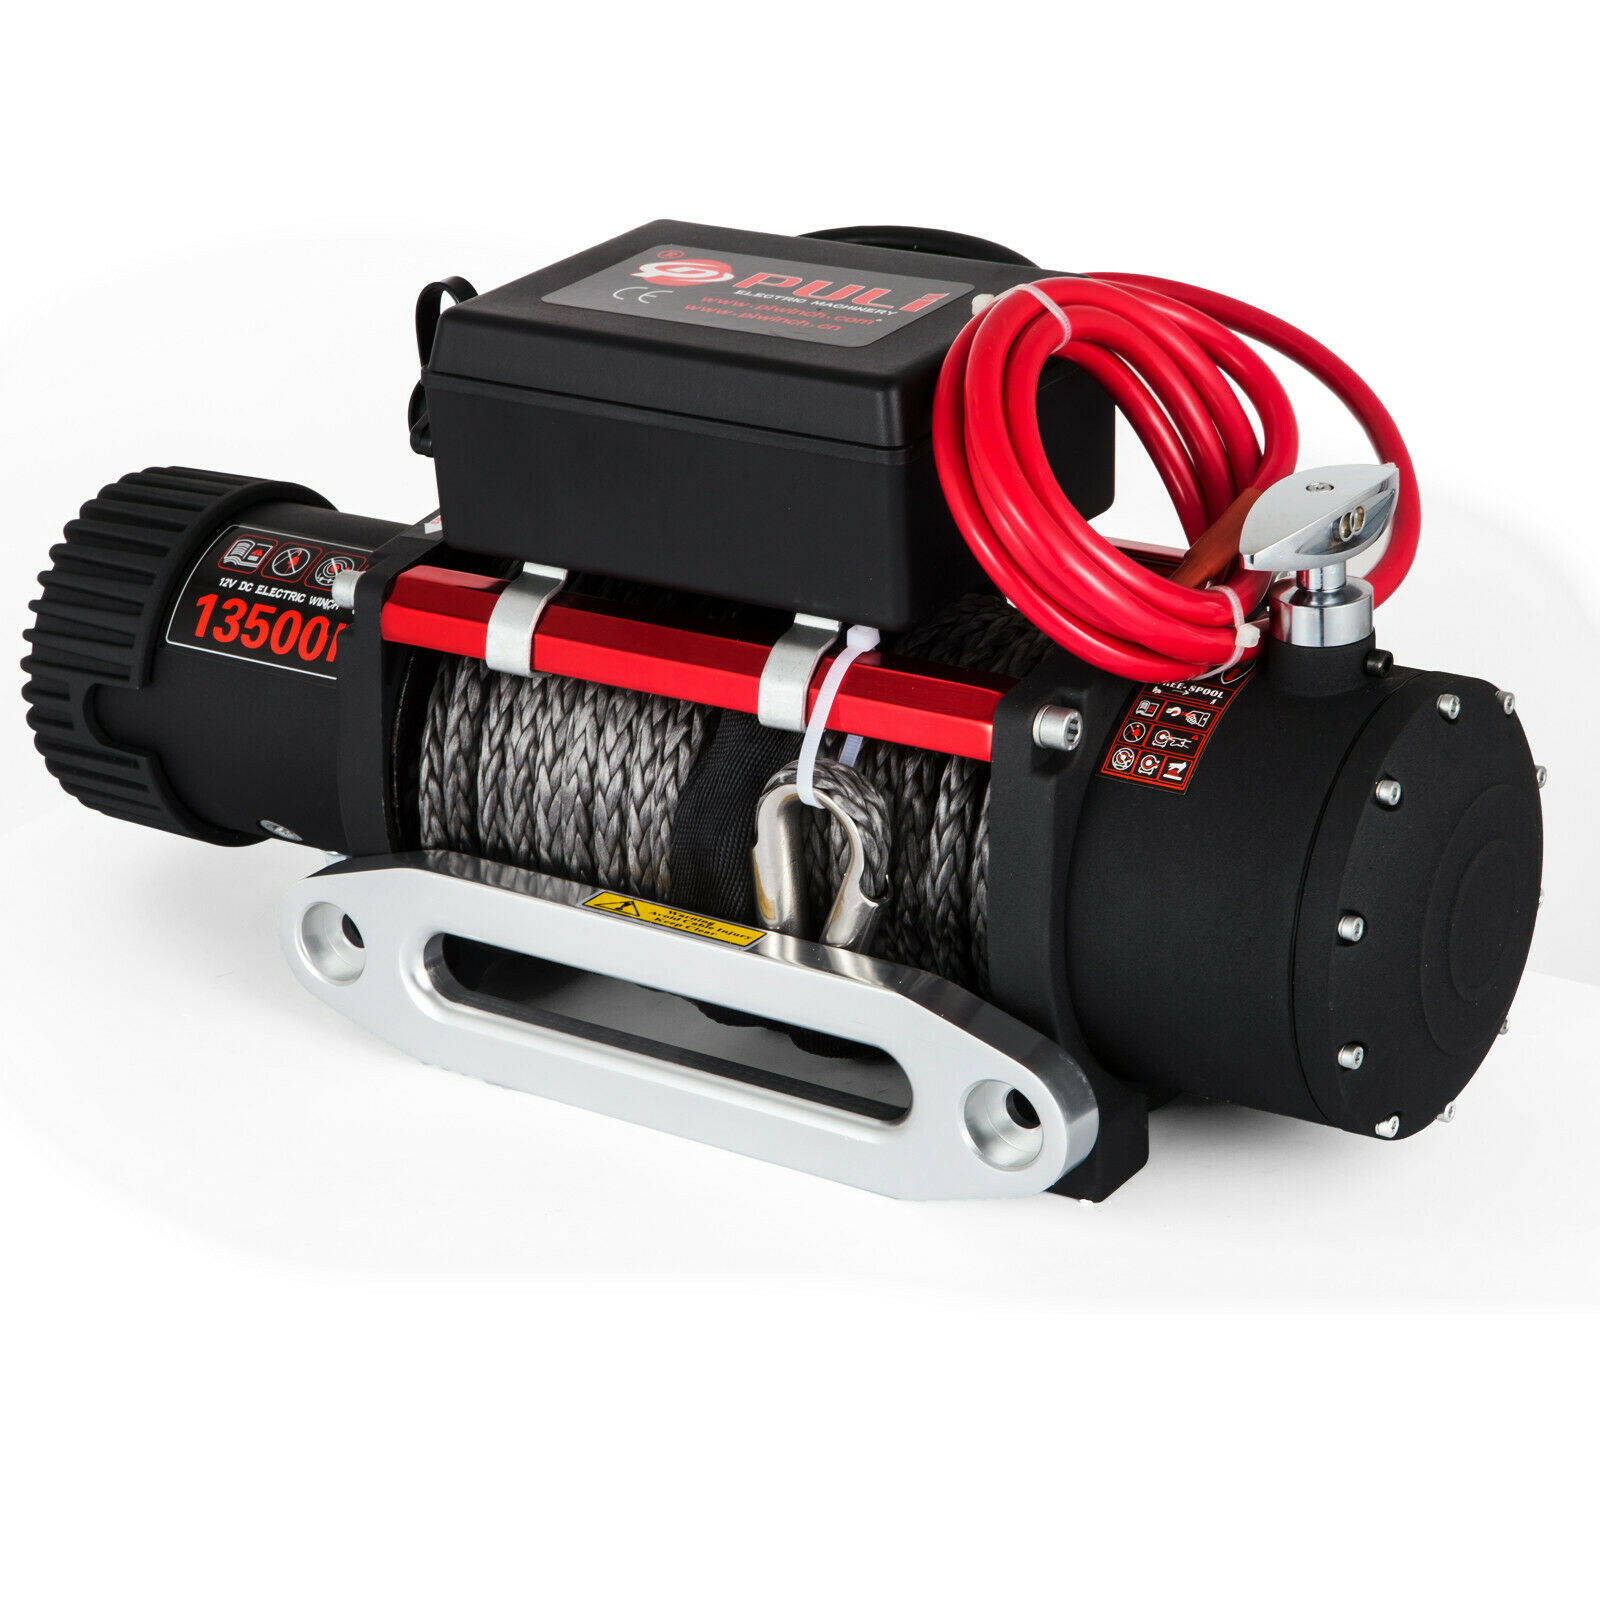 12v Electric Winch ATV Recovery Winch 6120 KG 13500LBS Synthetic Rope With Remote Control For ATV UTV